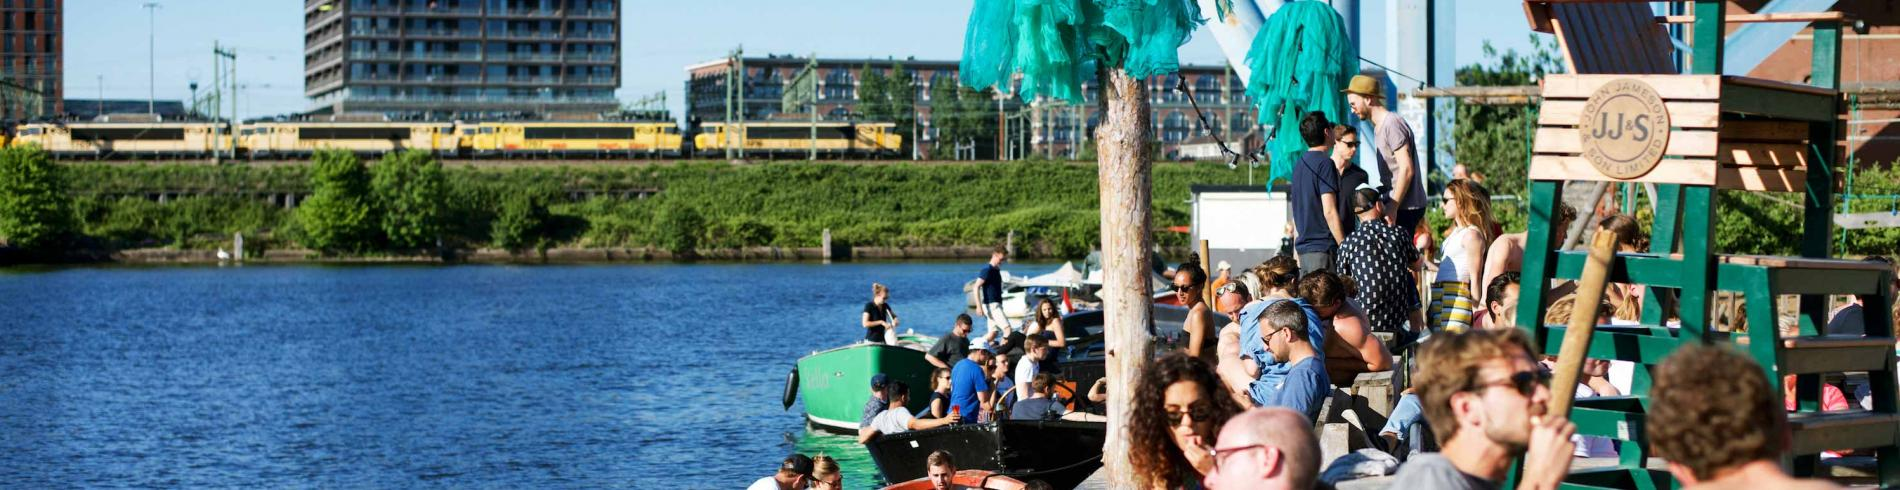 People enjoying drinks at Amsterdam Roest